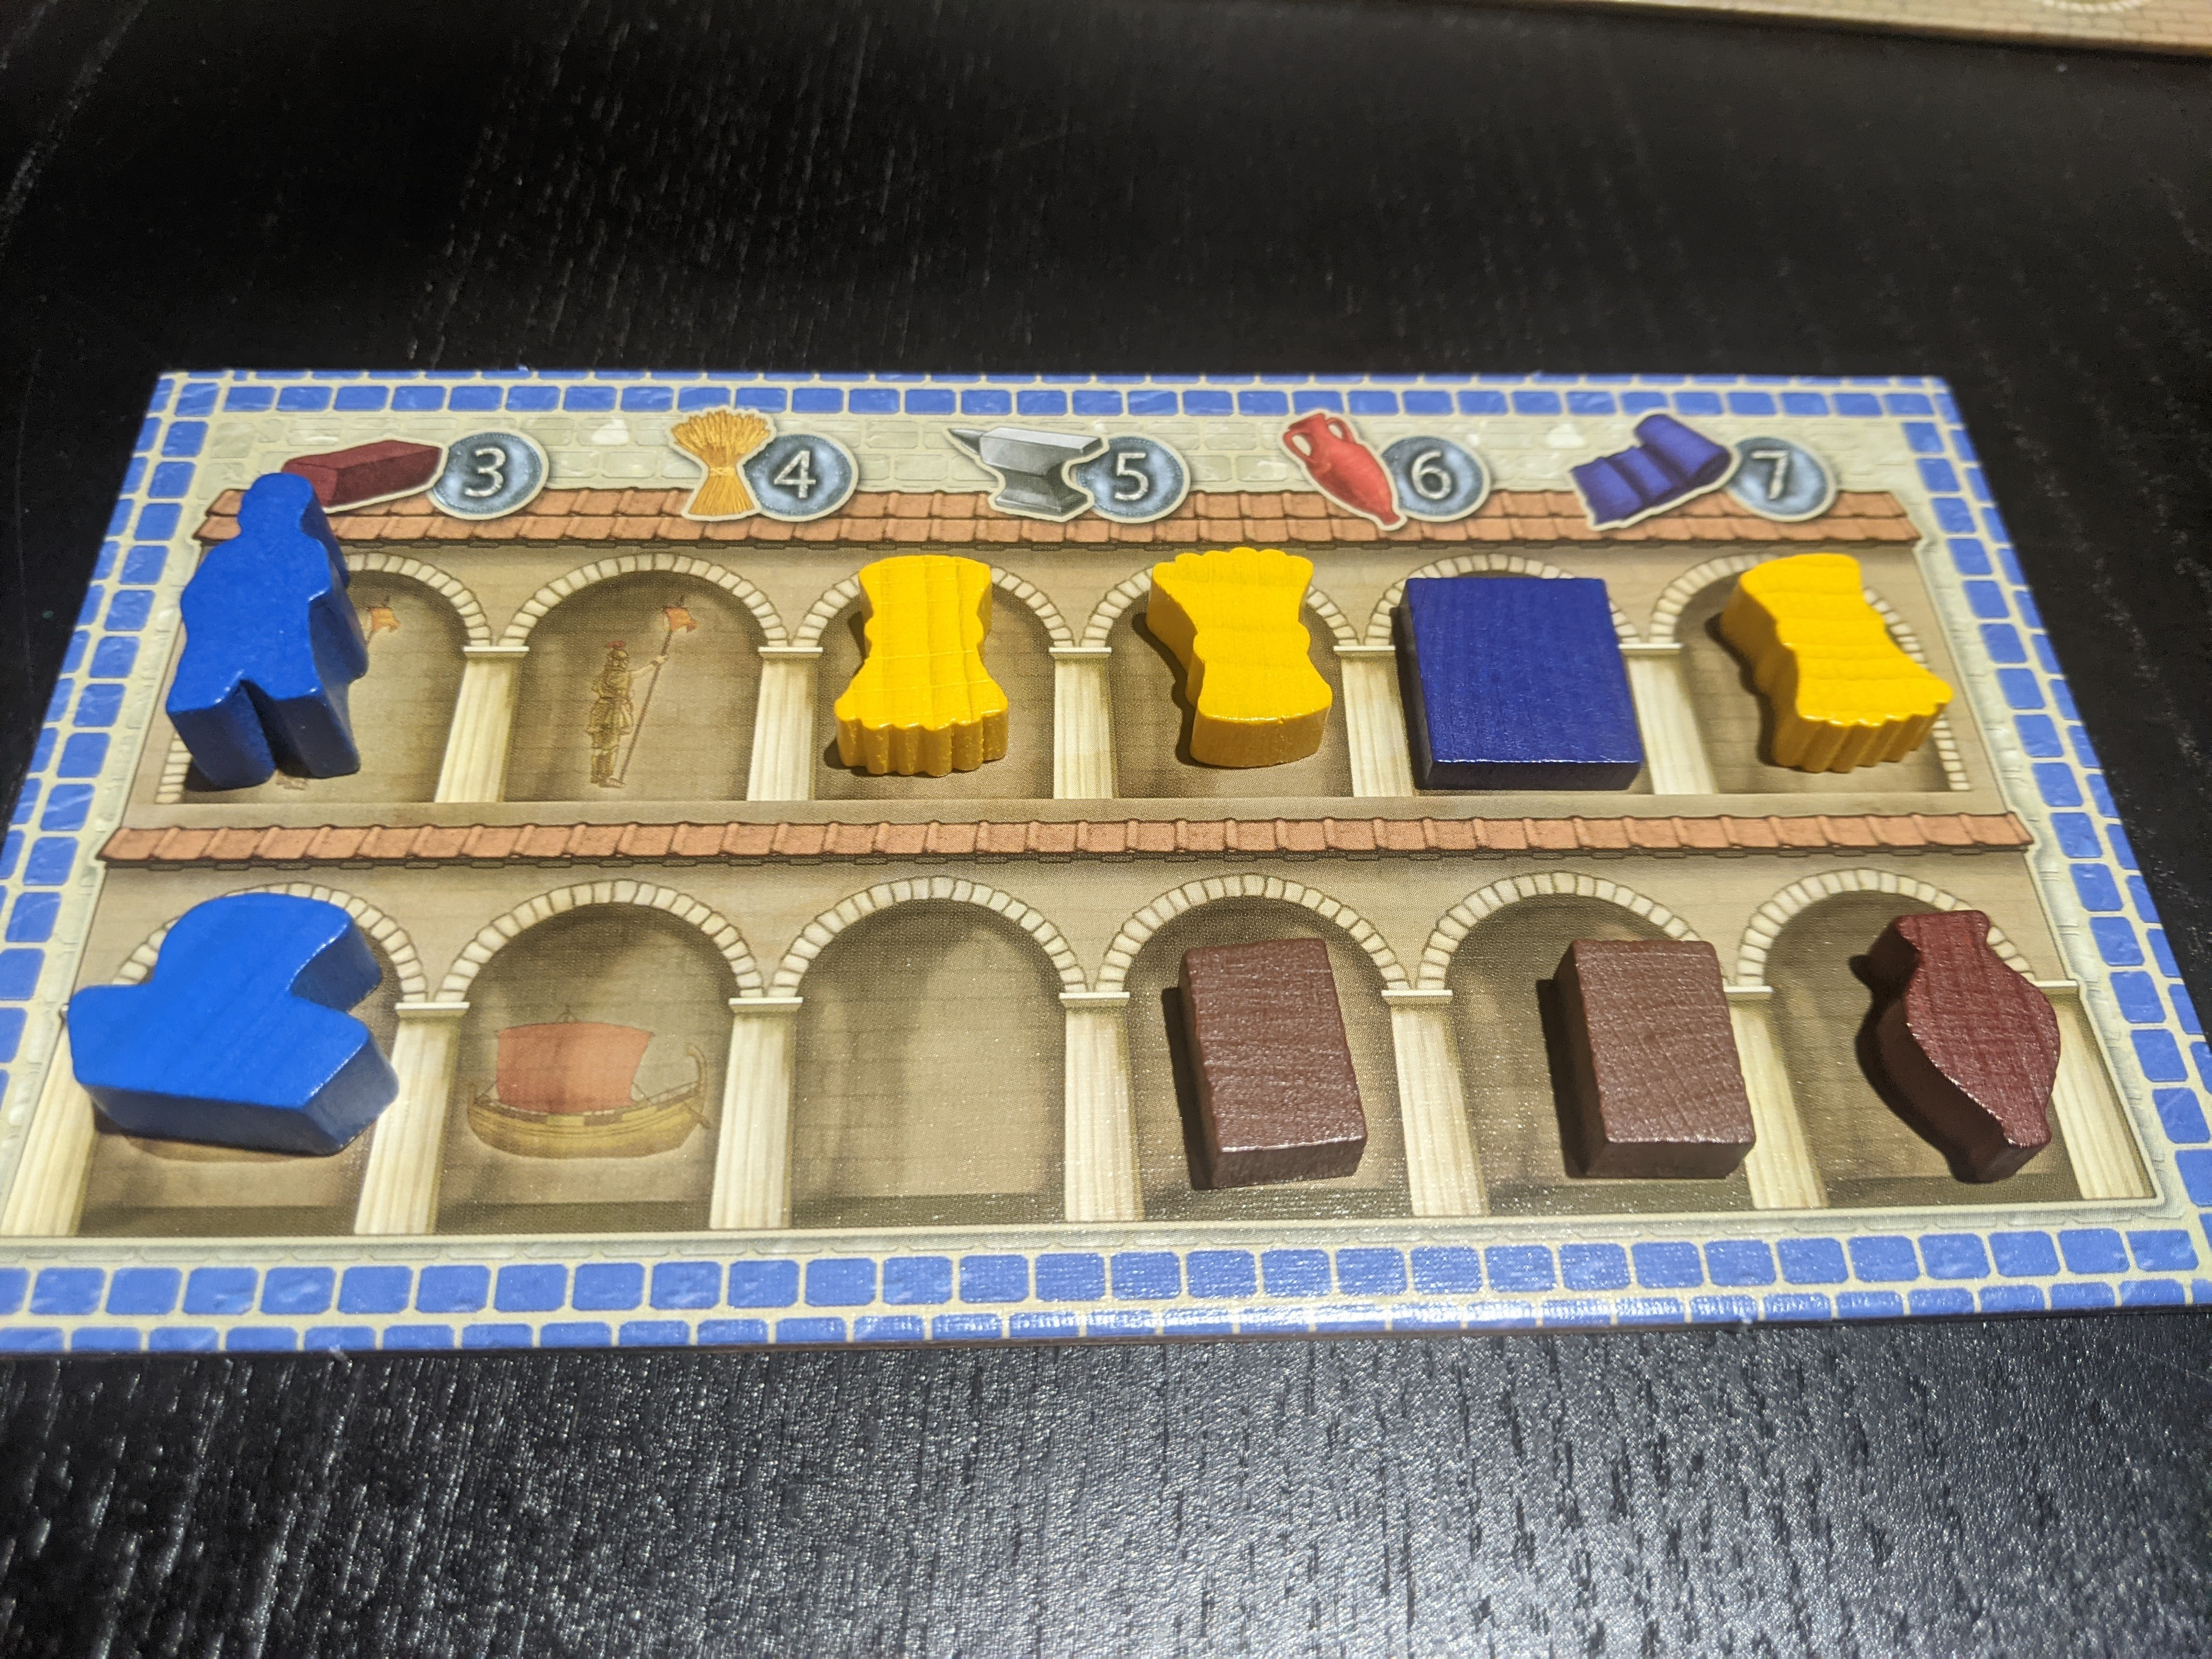 Up close shot of wheat, fabric, bricks, wine components on a player board.